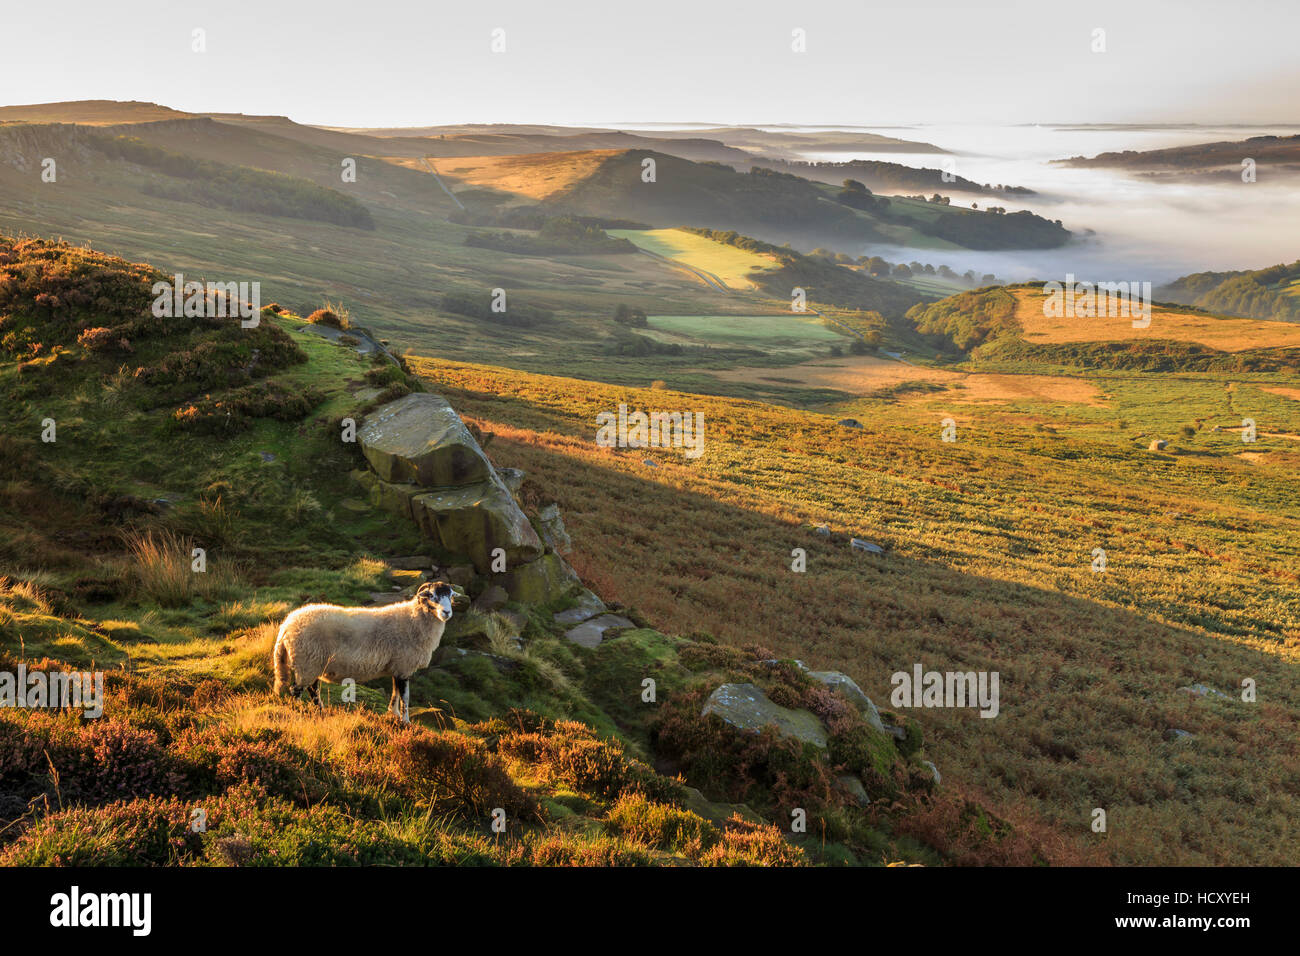 Sheep, valley with temperature inversion fog, Stanage Edge, Peak District National Park, autumn heather, Derbyshire, - Stock Image